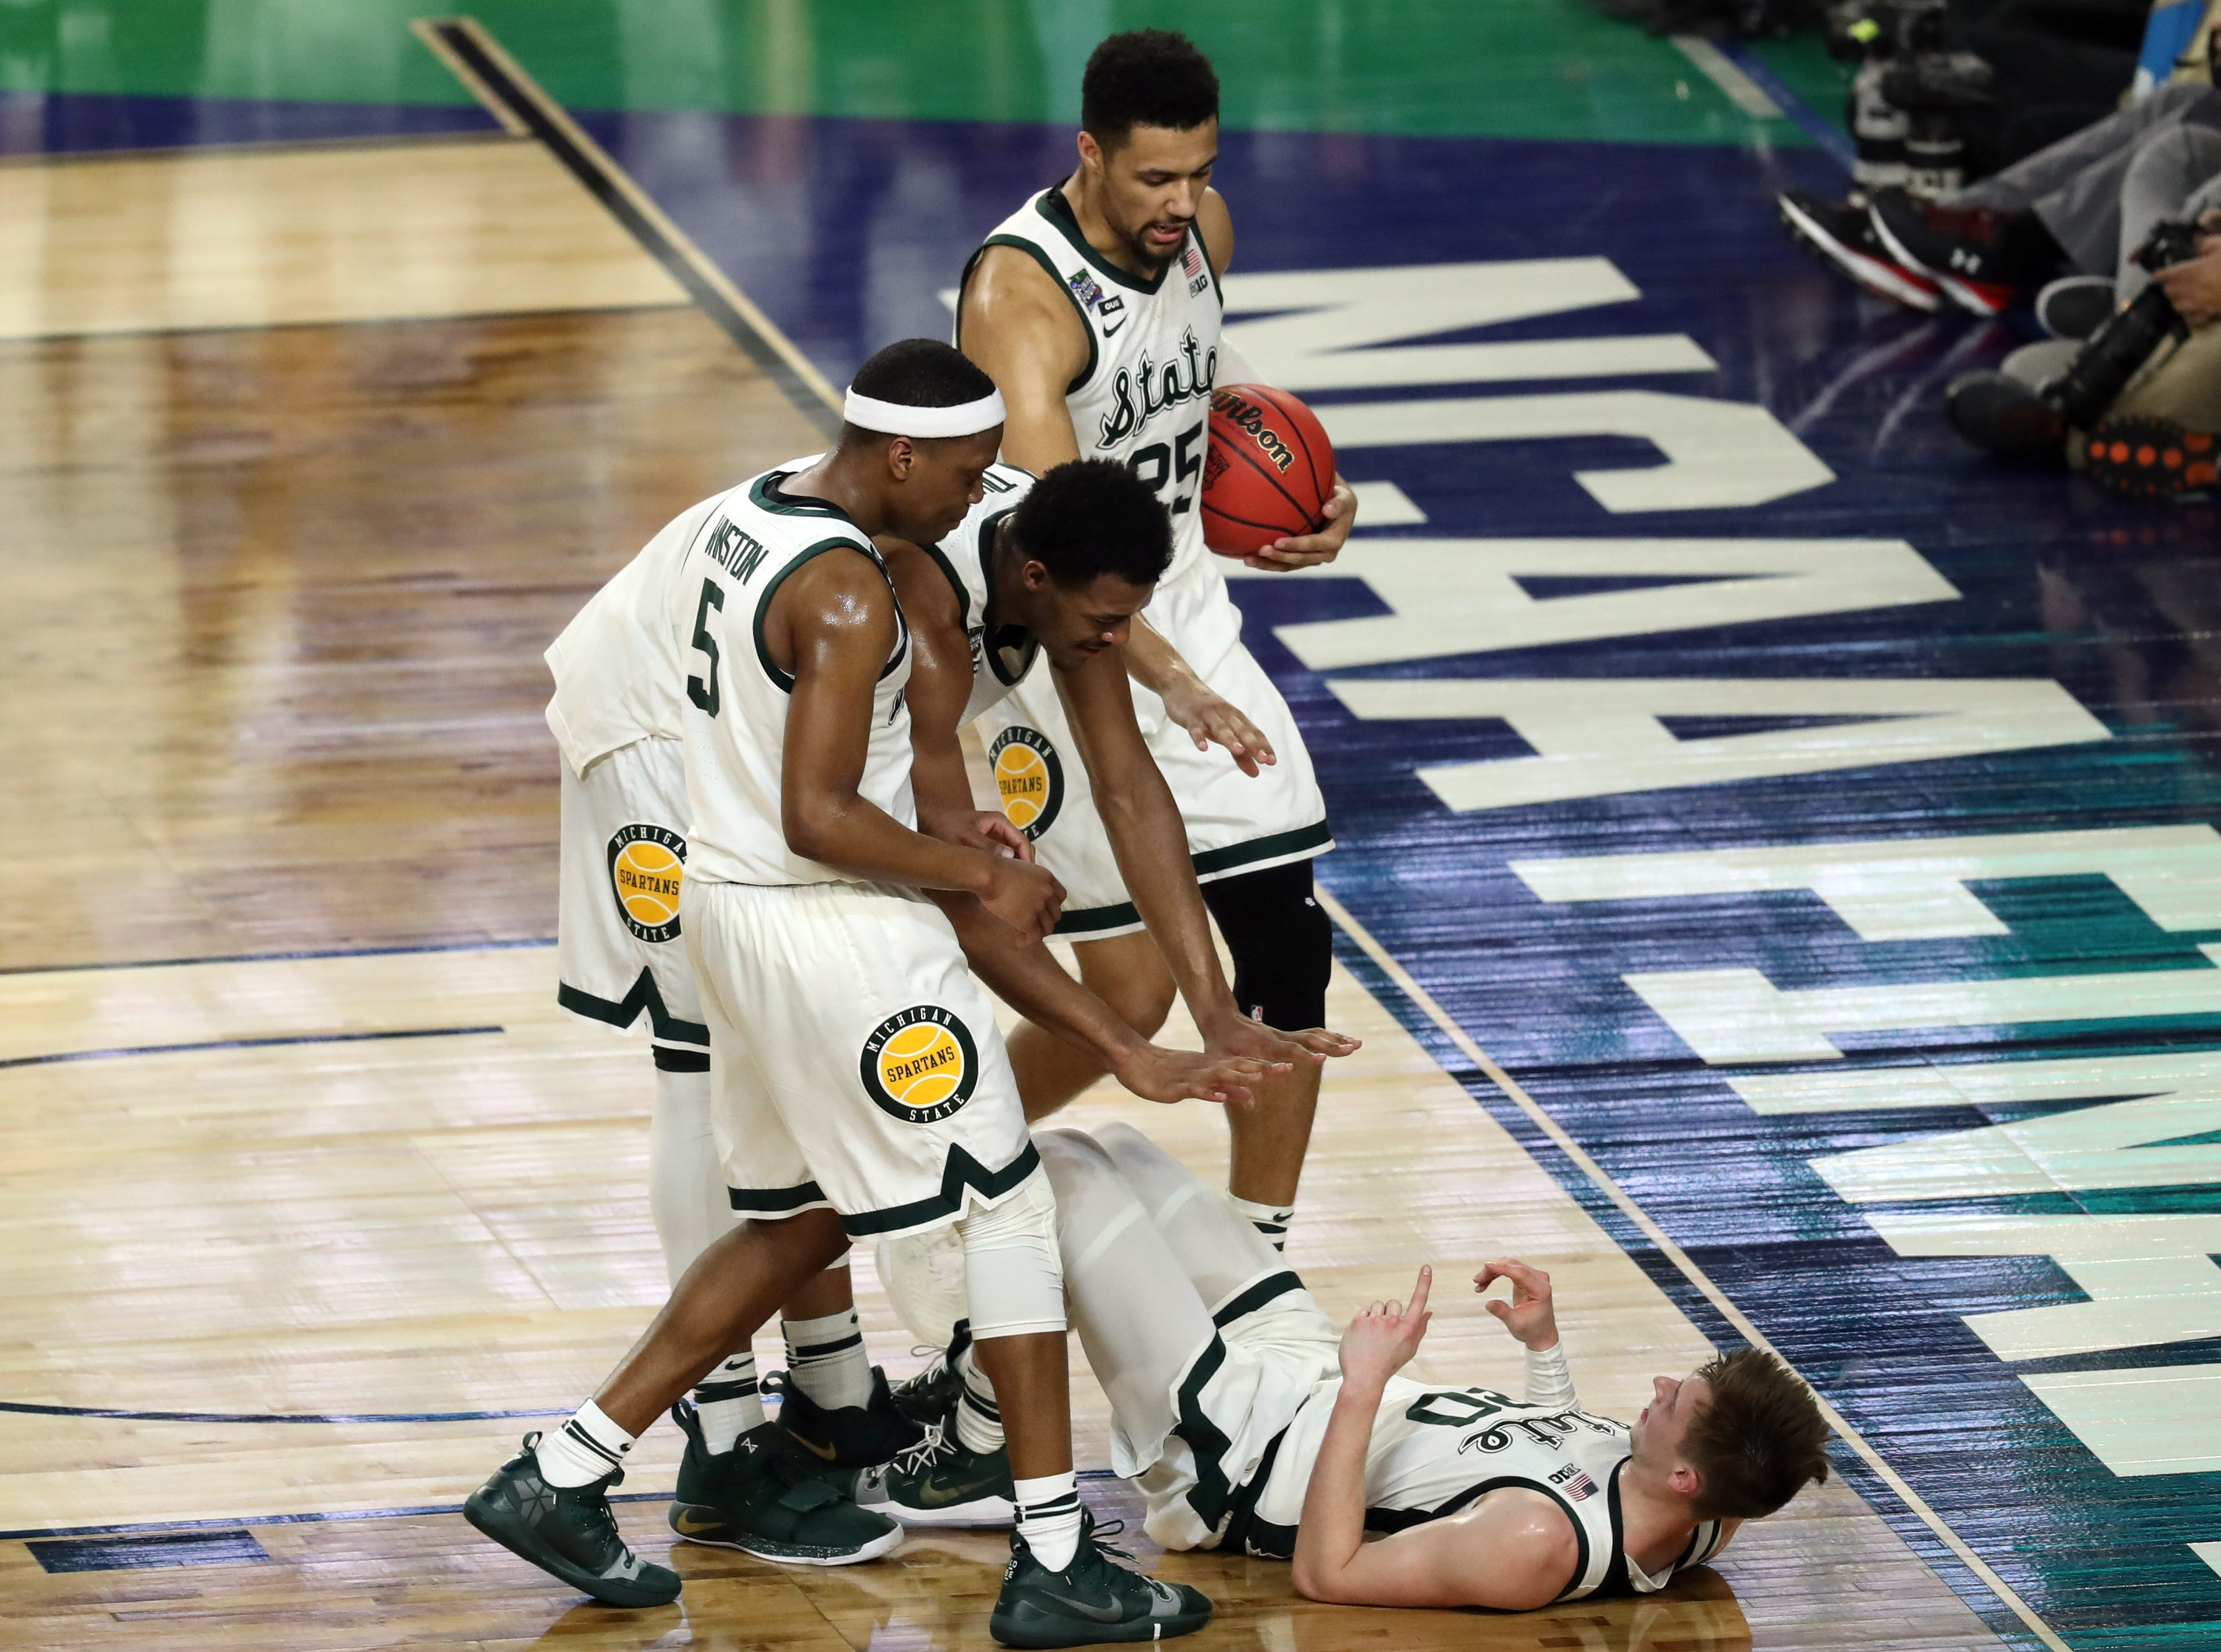 Apr 6, 2019; Minneapolis, MN, USA; Michigan State Spartans guard Cassius Winston (5) and teammates help guard Matt McQuaid (20) up during the first half against the Texas Tech Red Raiders in the semifinals of the 2019 men's Final Four at US Bank Stadium. Mandatory Credit: Brace Hemmelgarn-USA TODAY Sports